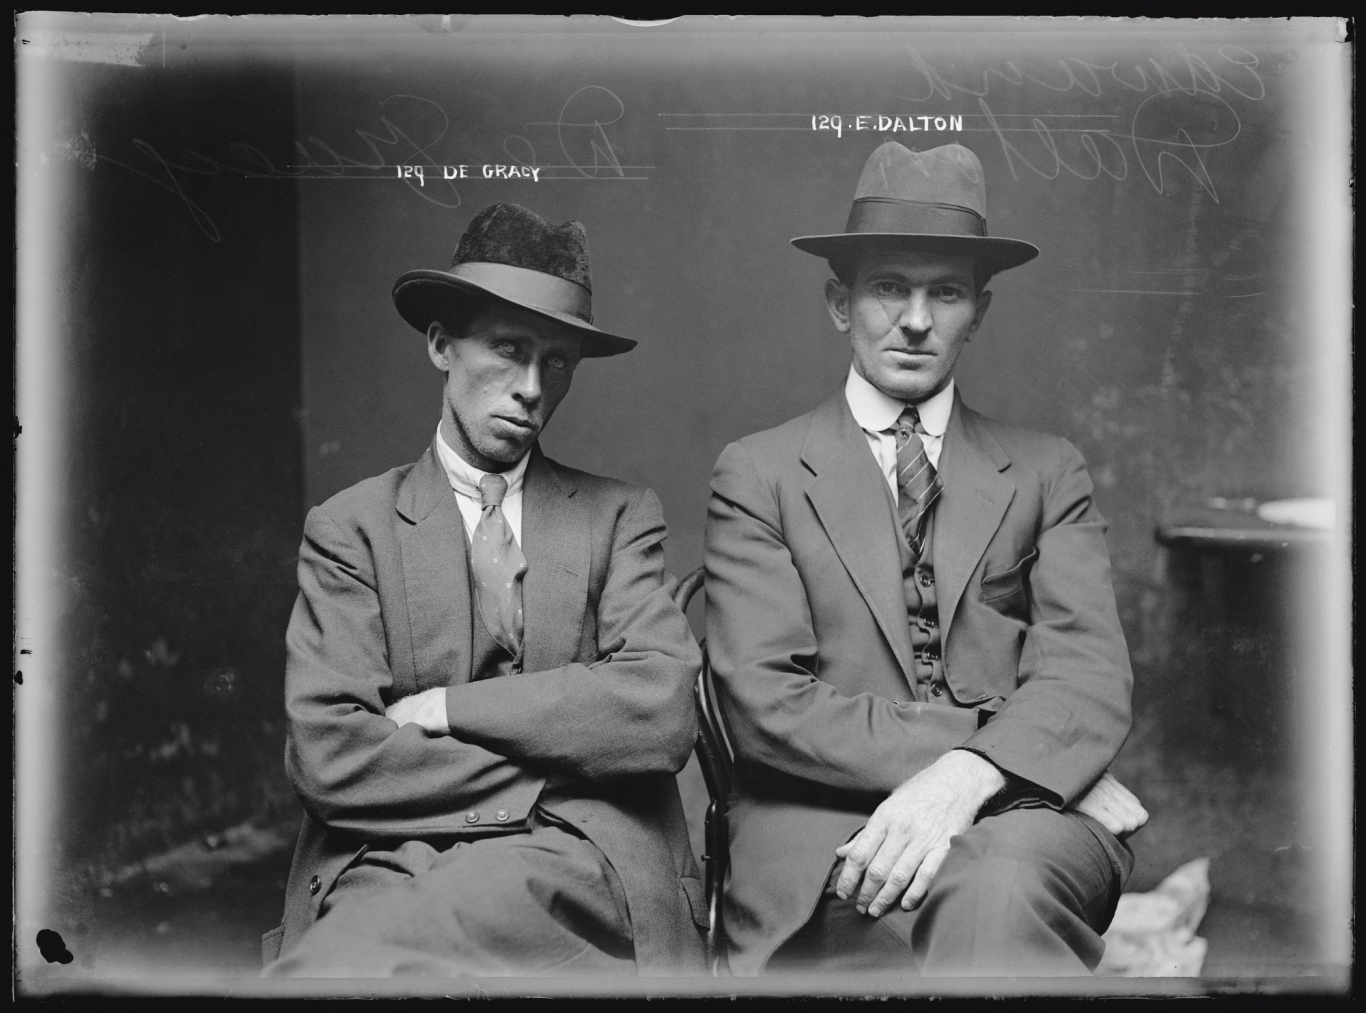 Black and white mugshot of two seated men with hats on.